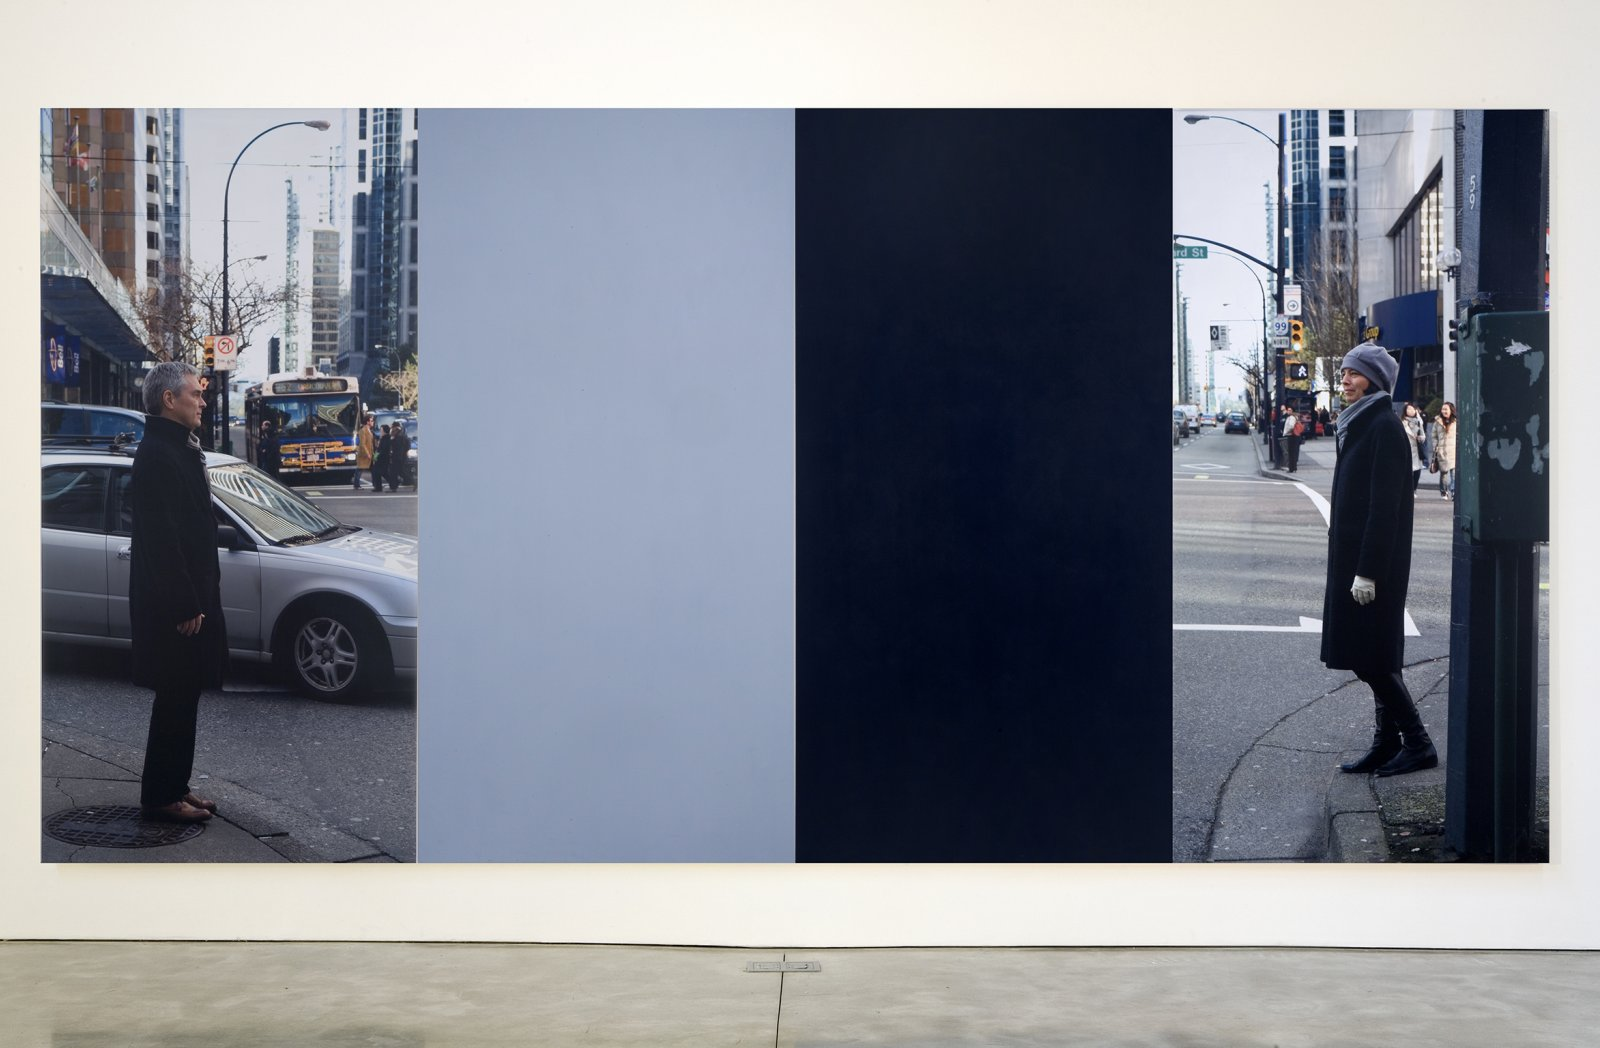 Ian Wallace,At the Crosswalk III, 2007,photolaminate and acrylic on canvas,96 x 193 in. (244 x 488 cm)